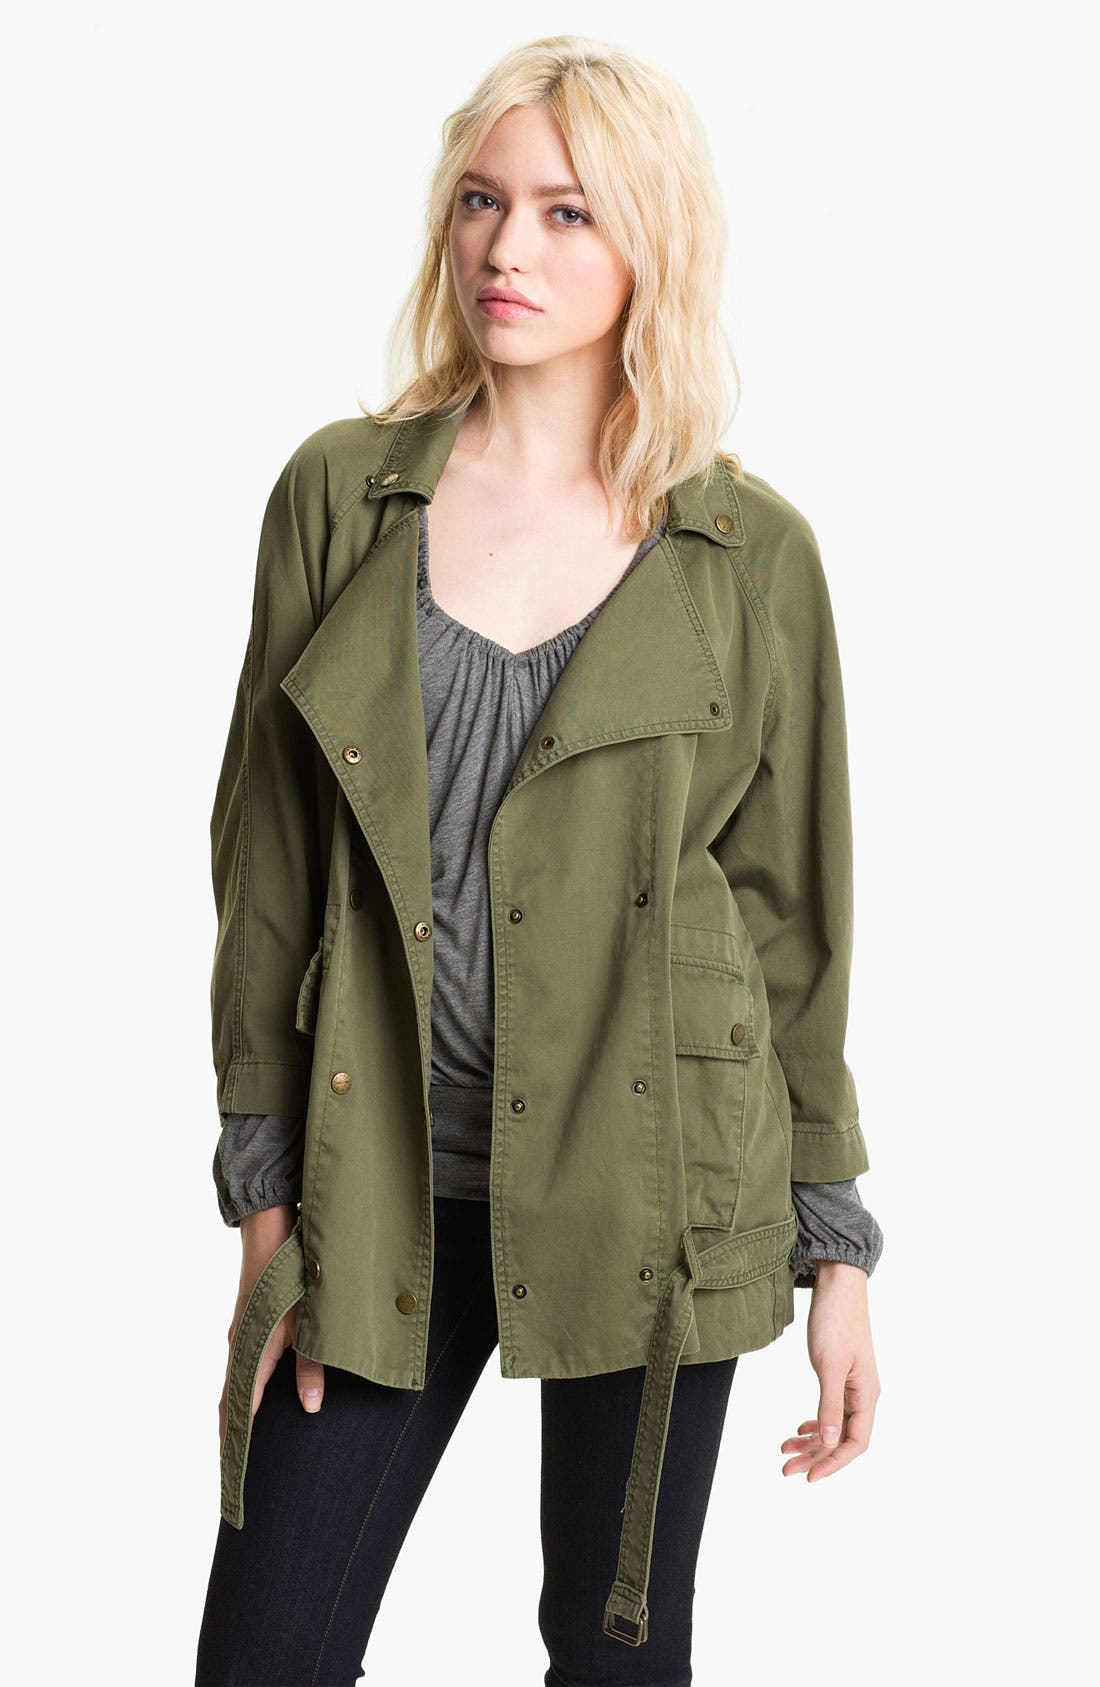 Main Image - Current/Elliott 'The Infantry' Army Jacket